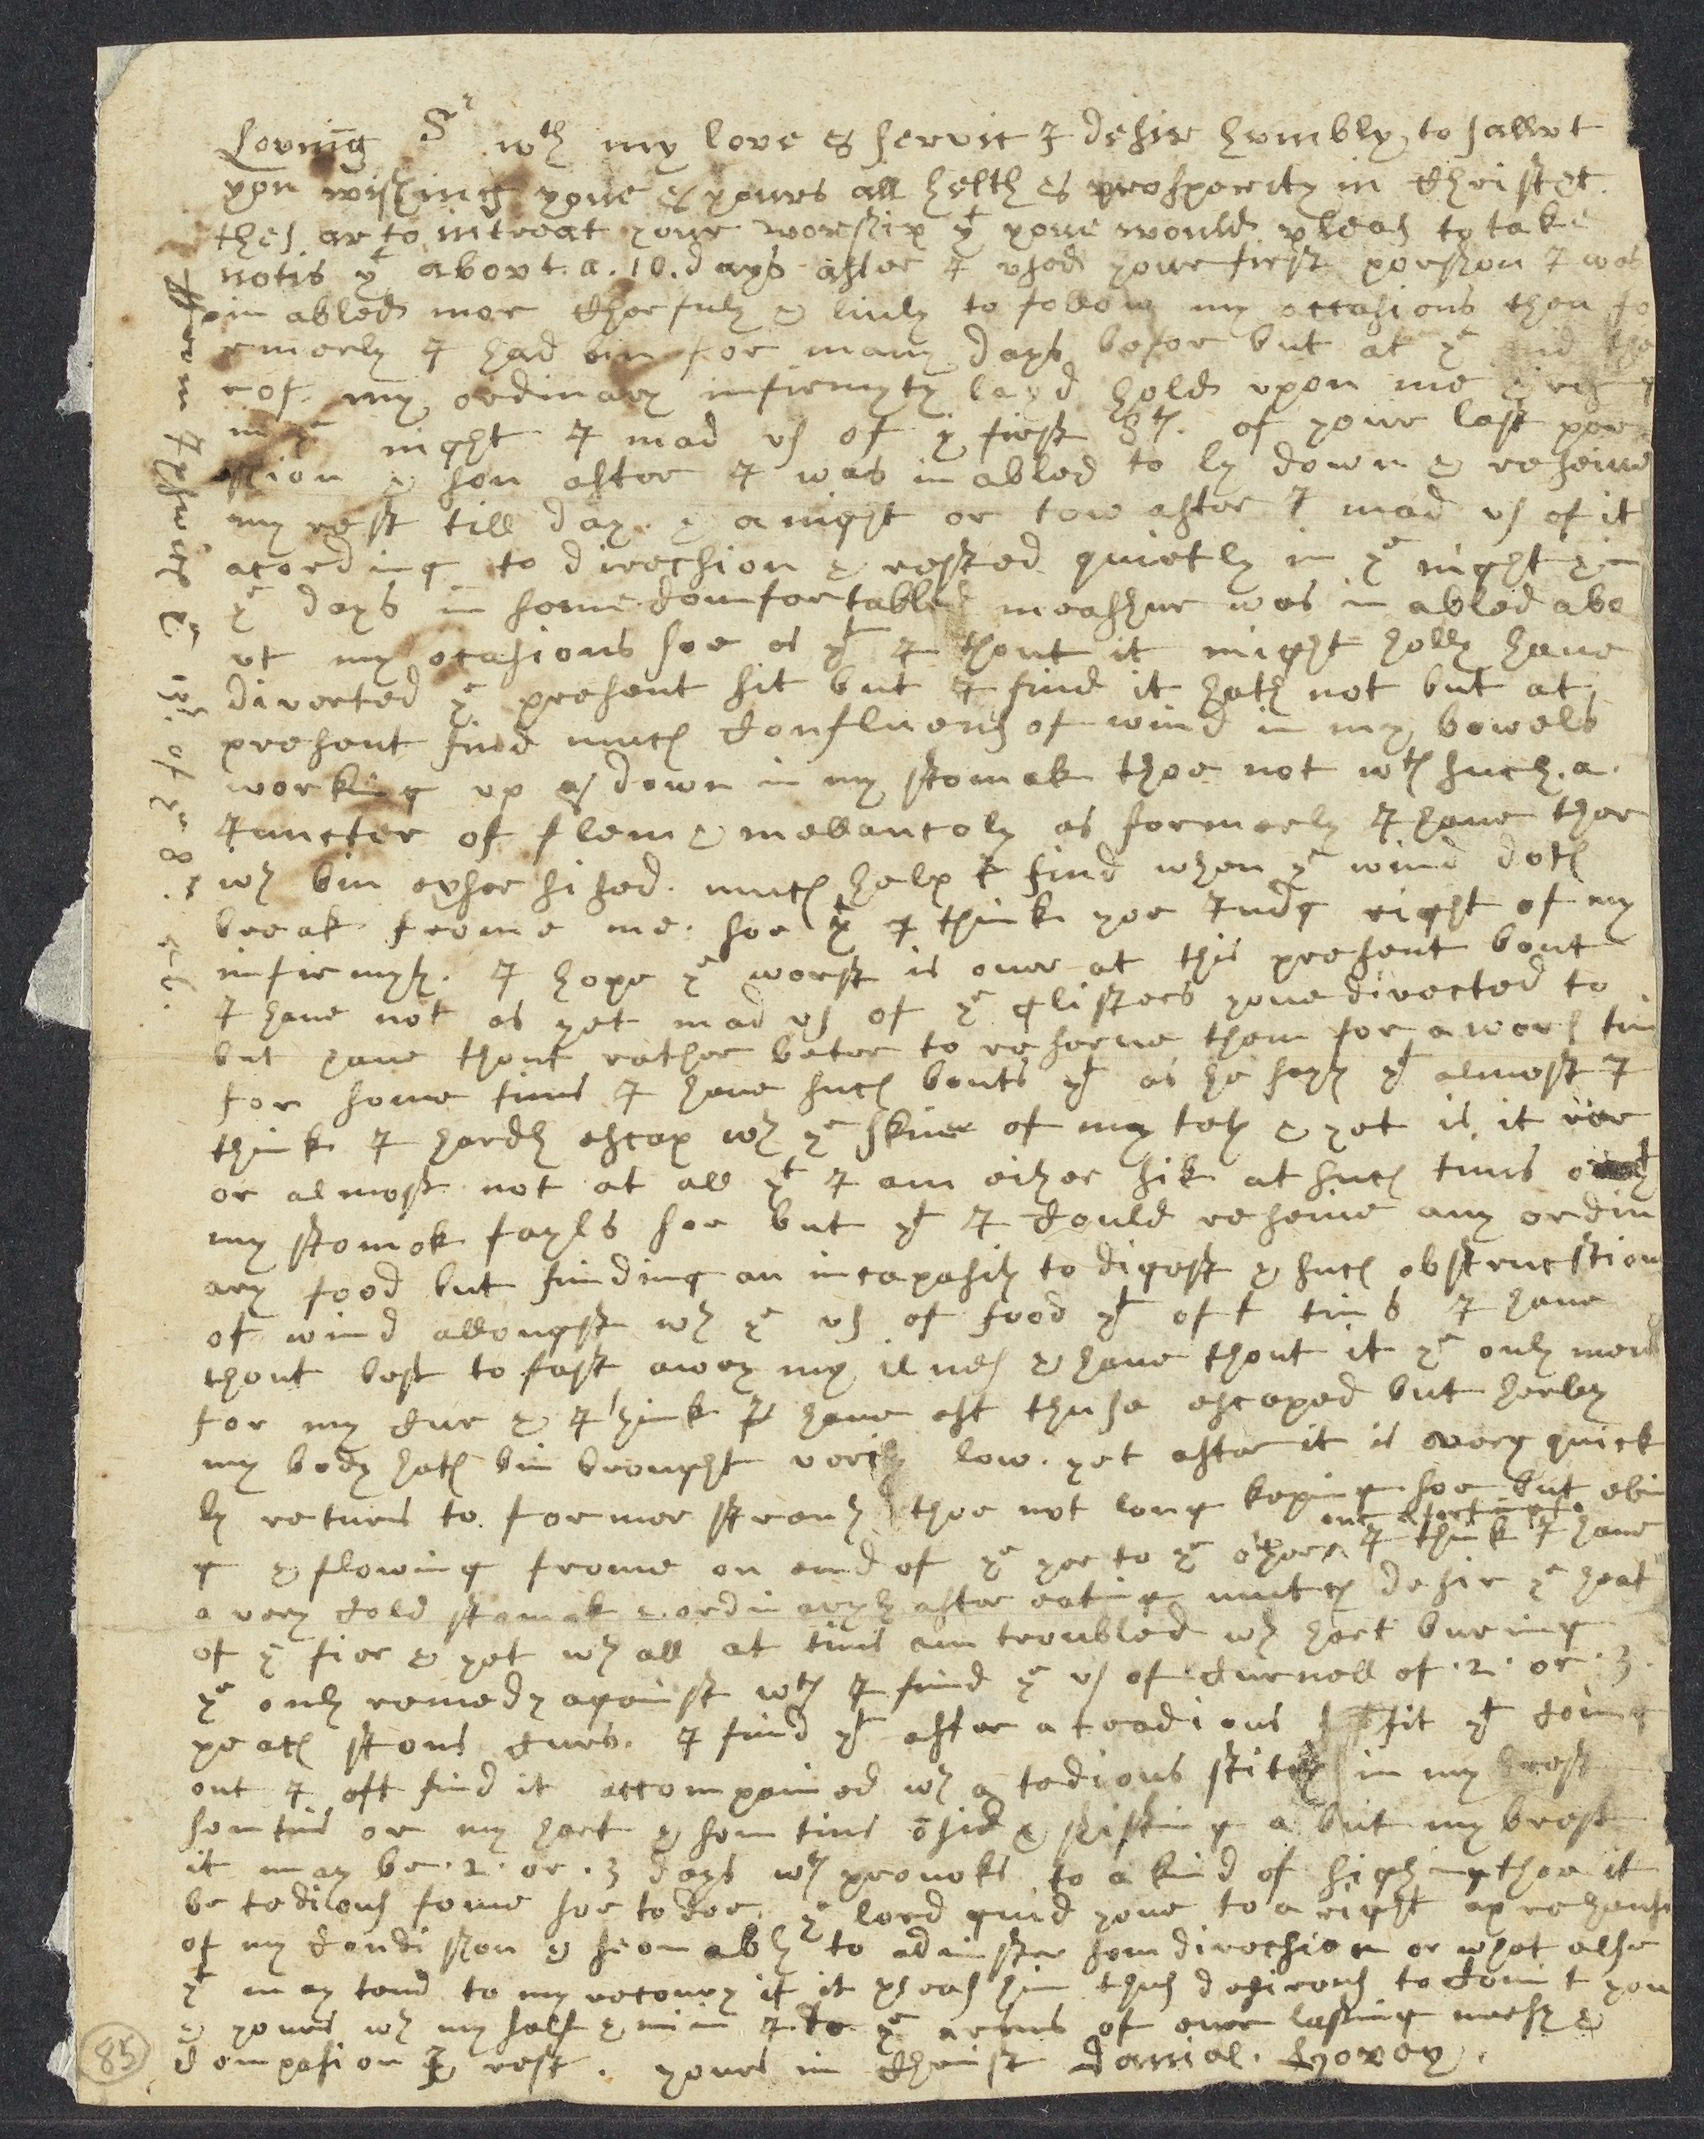 Hovey, Daniel, 1642-1695, autographed letter signed to John Winthrop; Ipswich, Mass., 1 side (2 pages), 1656 August 13